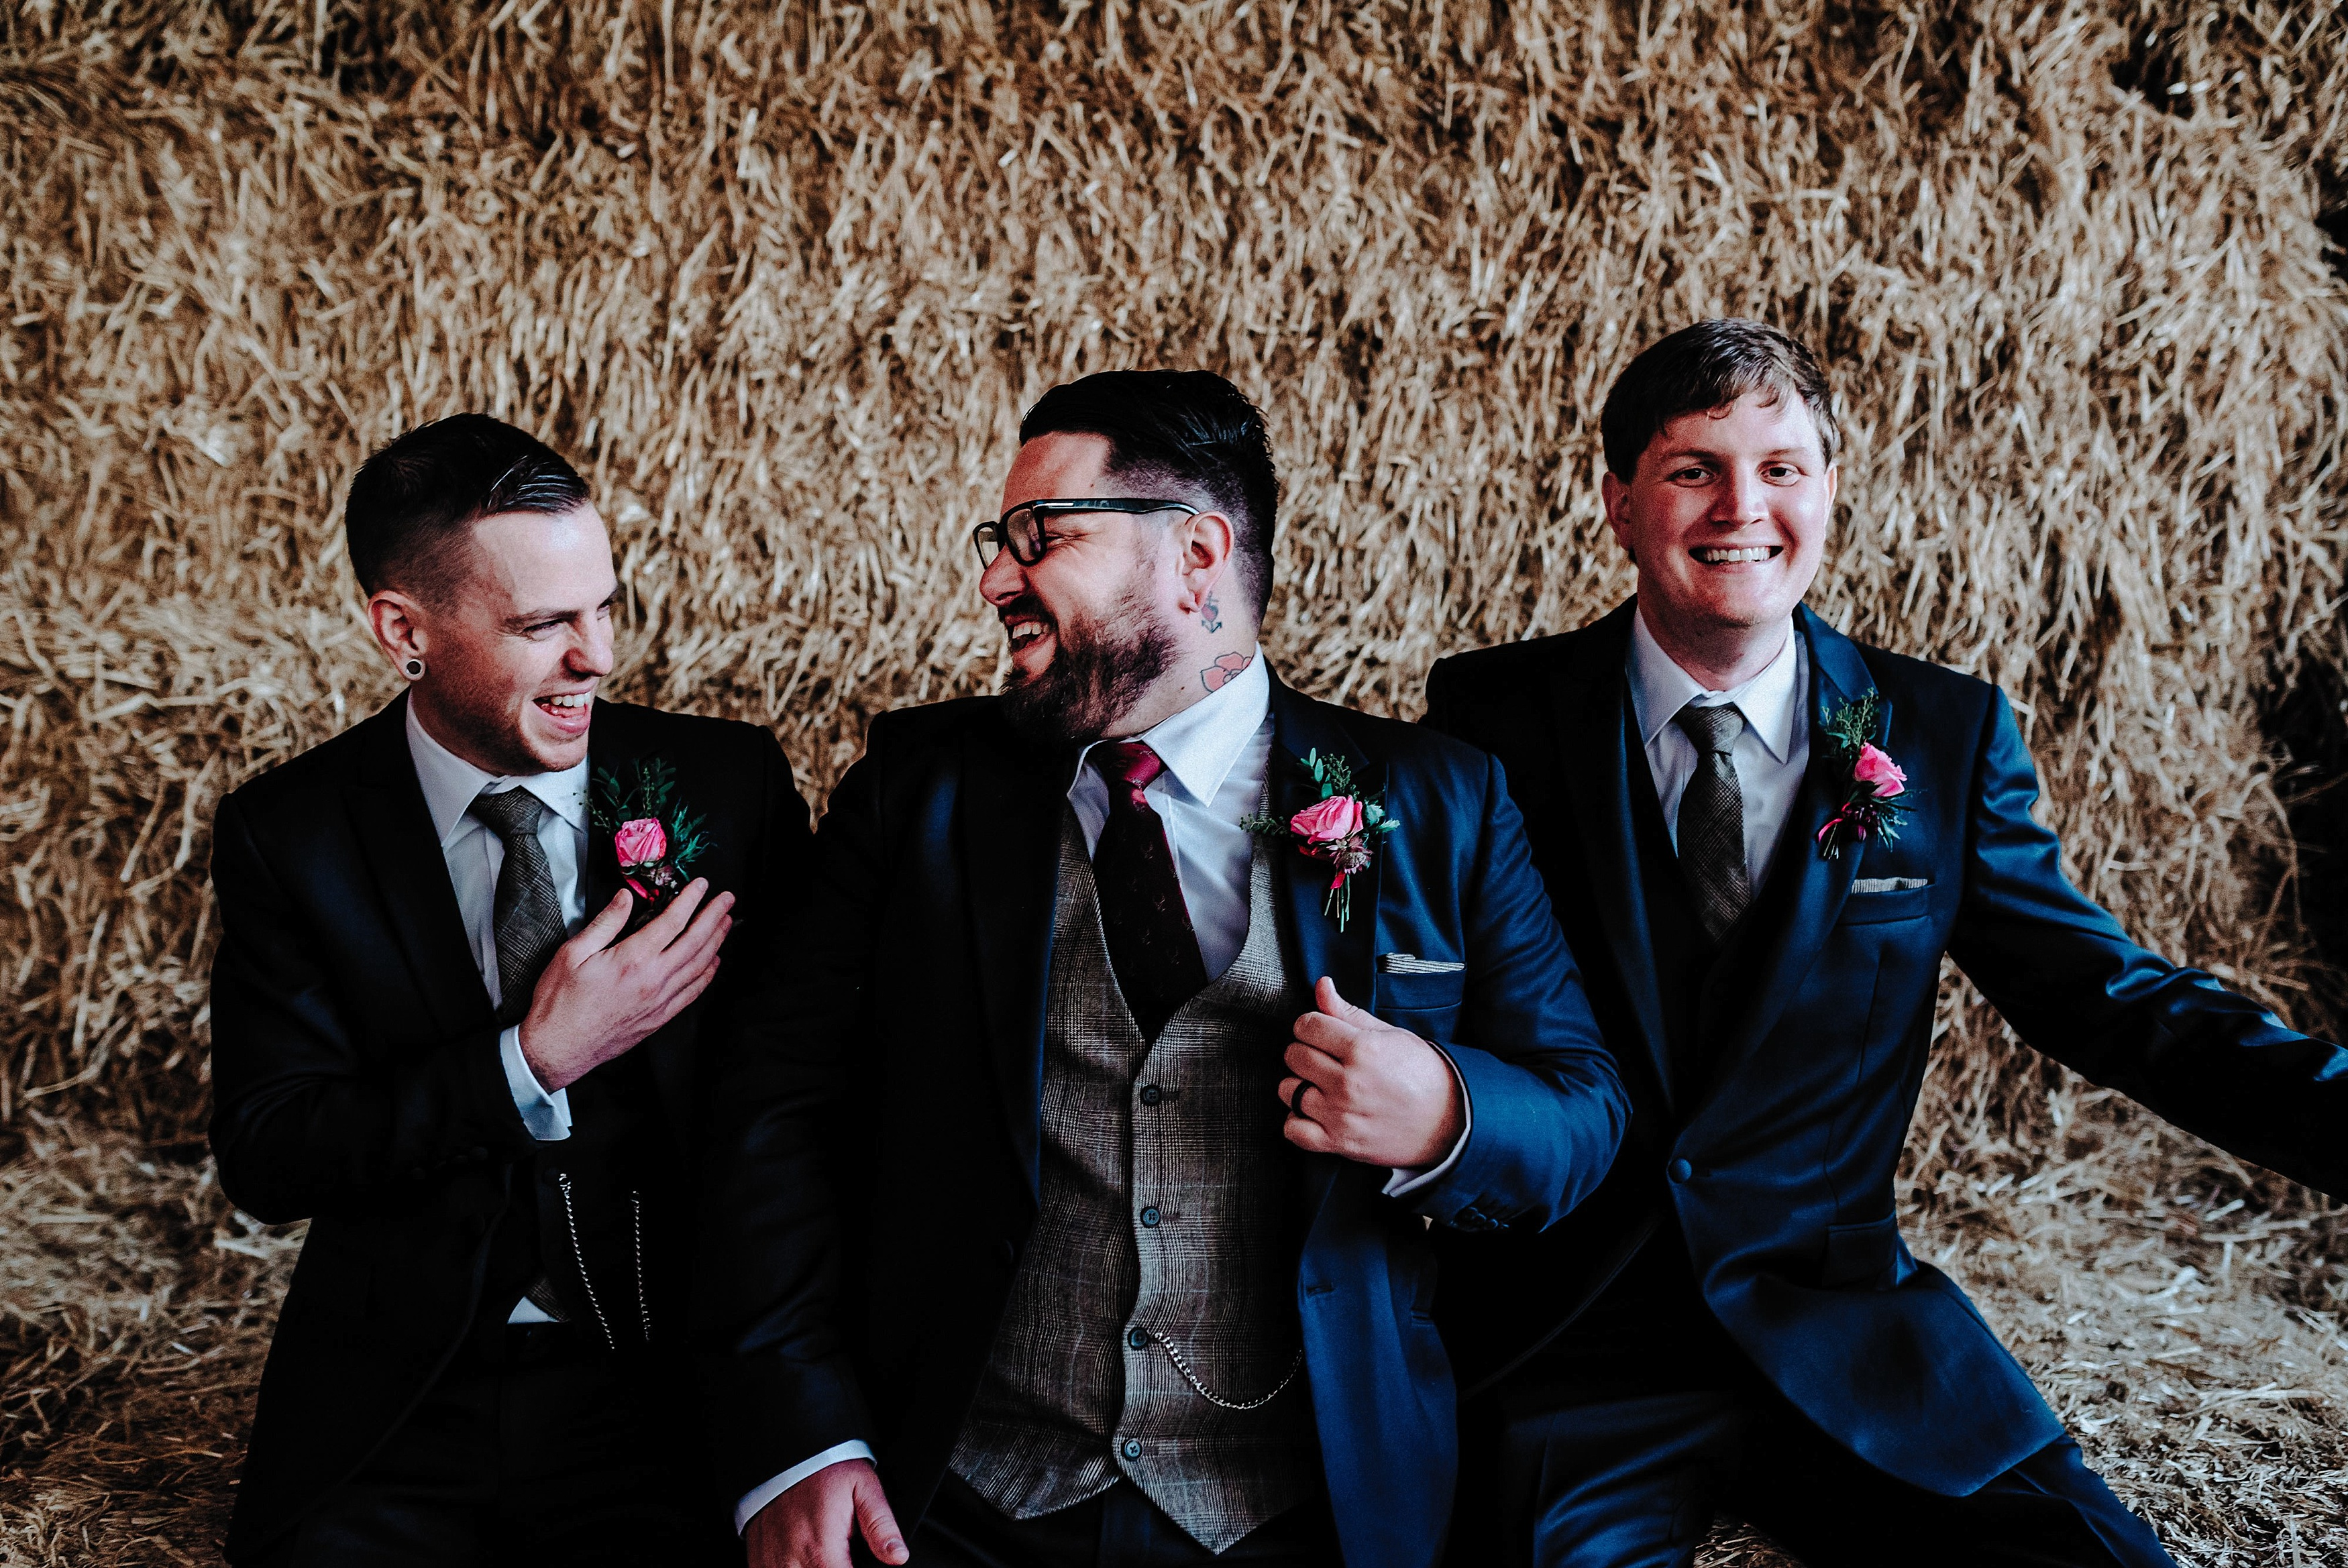 Groomsmen at Cheshire Barn Wedding